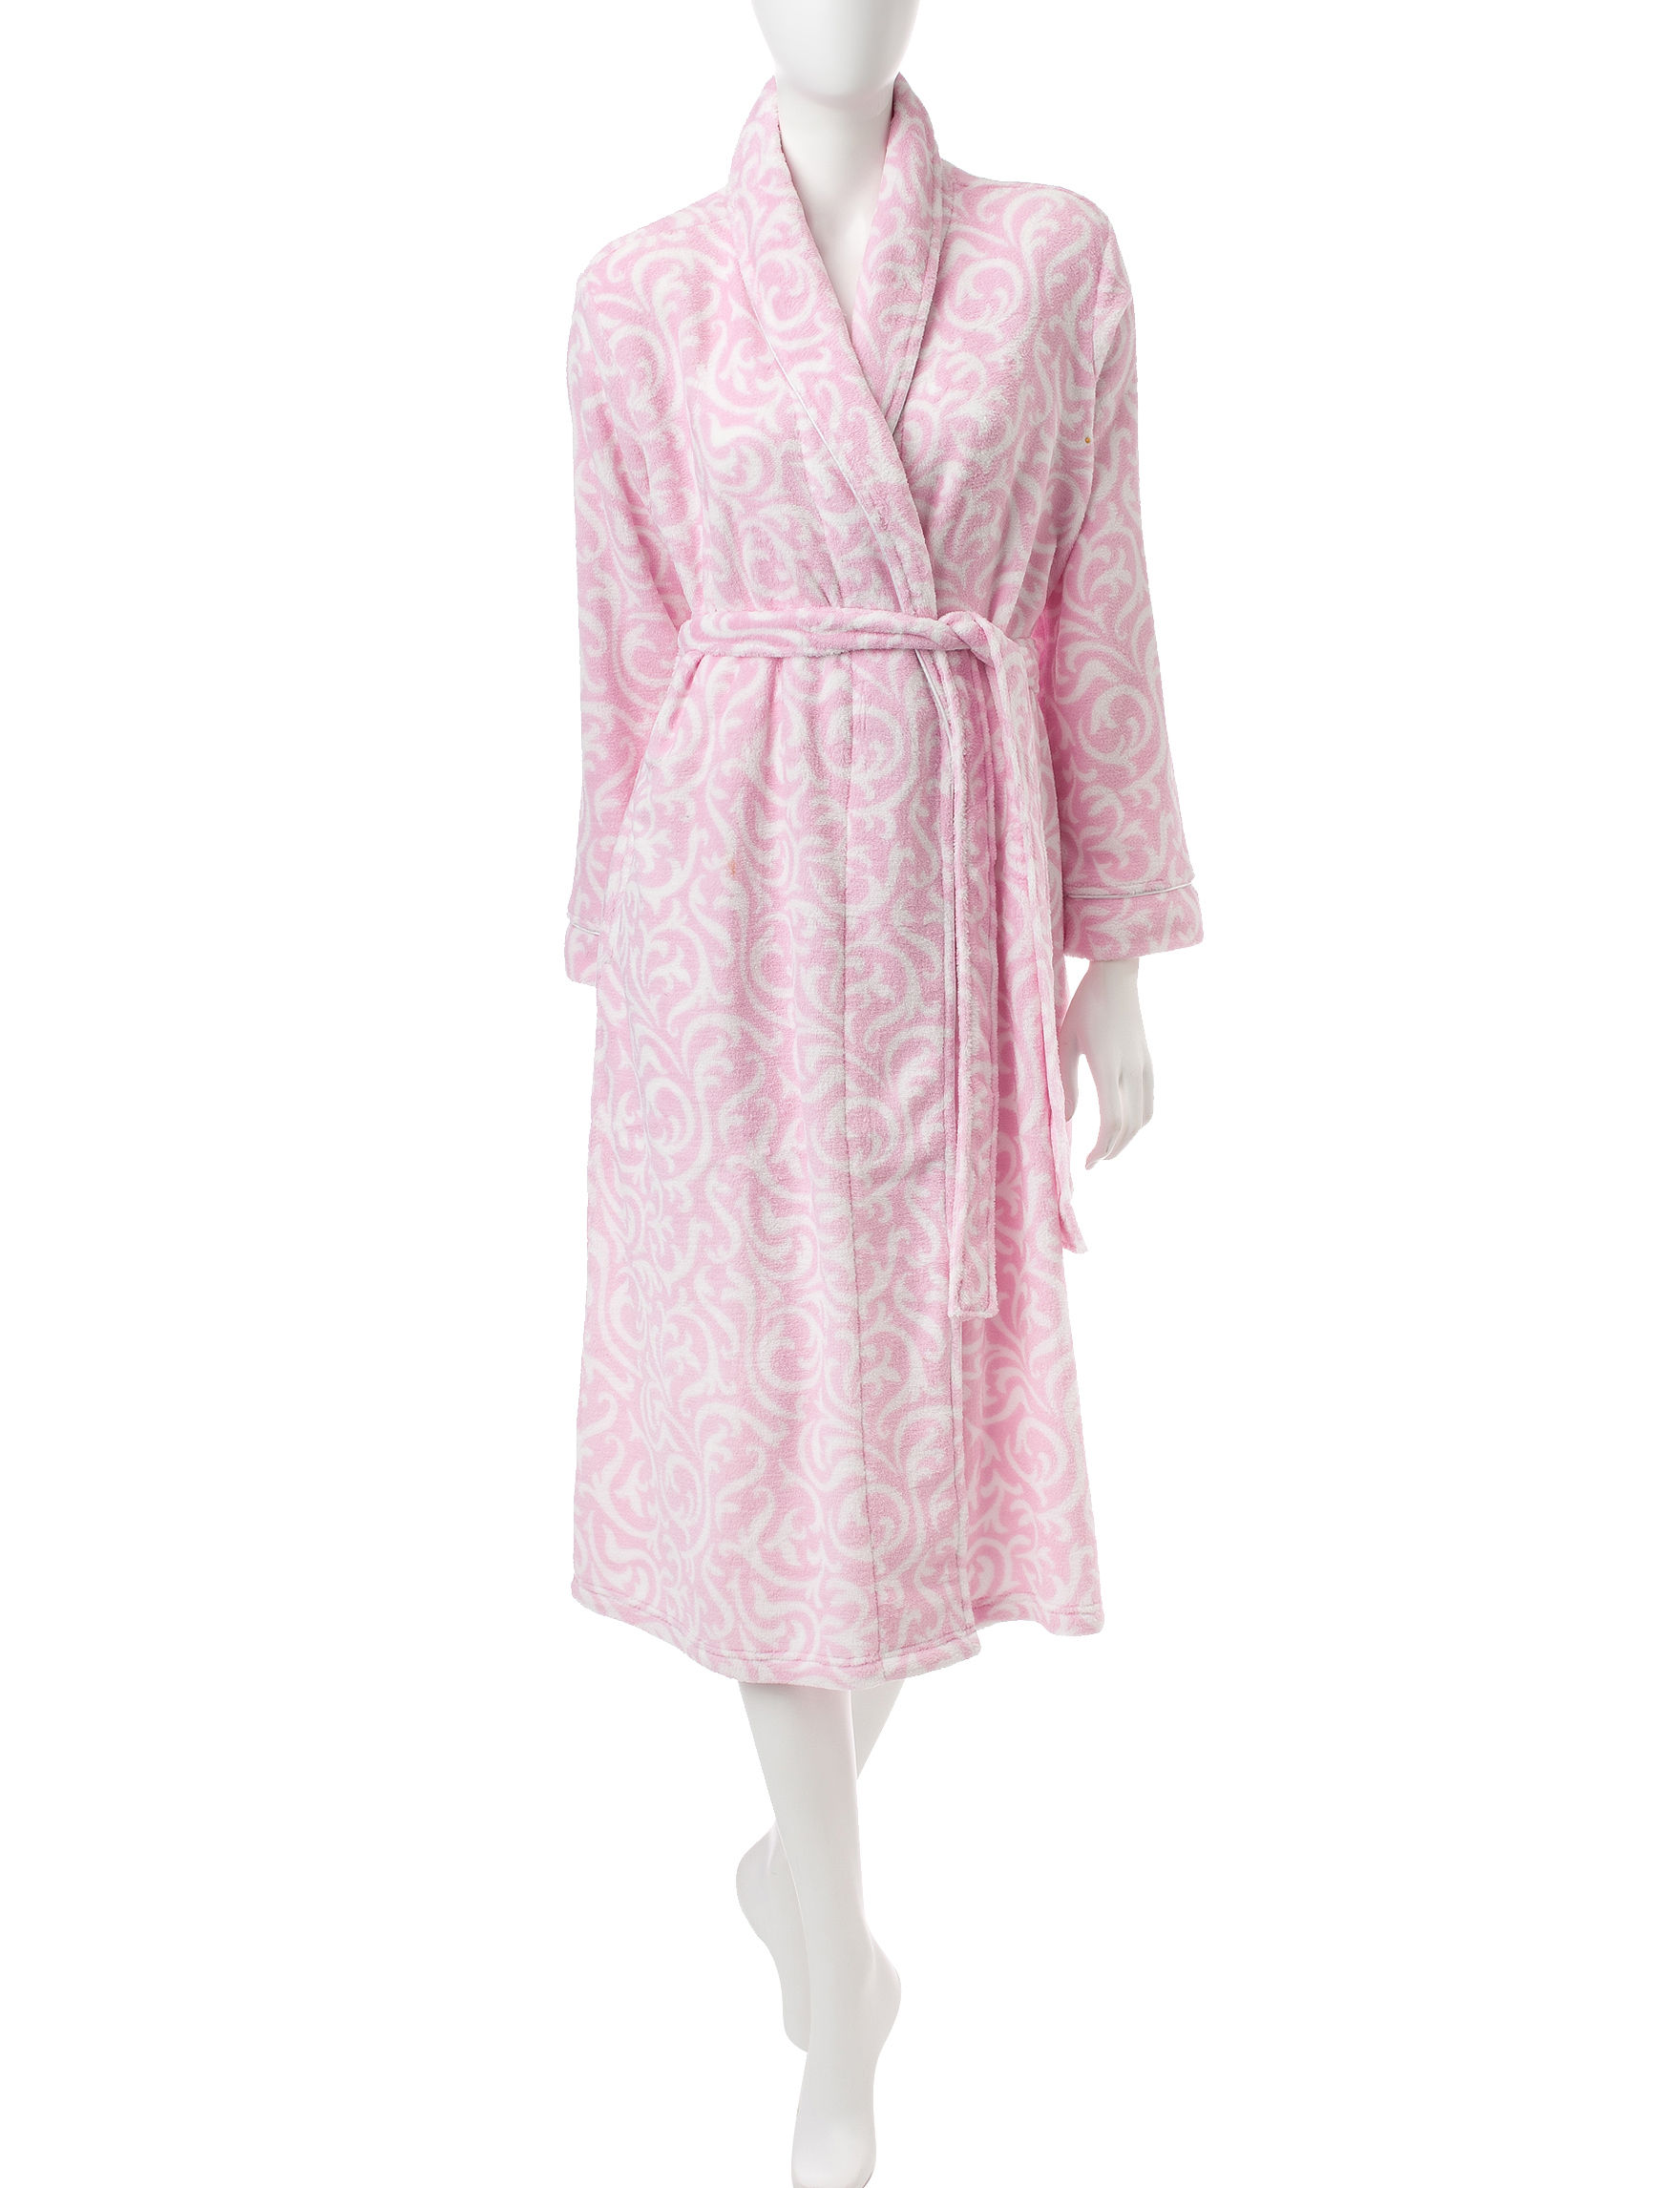 Laura Ashley Pink Robes, Wraps & Dusters